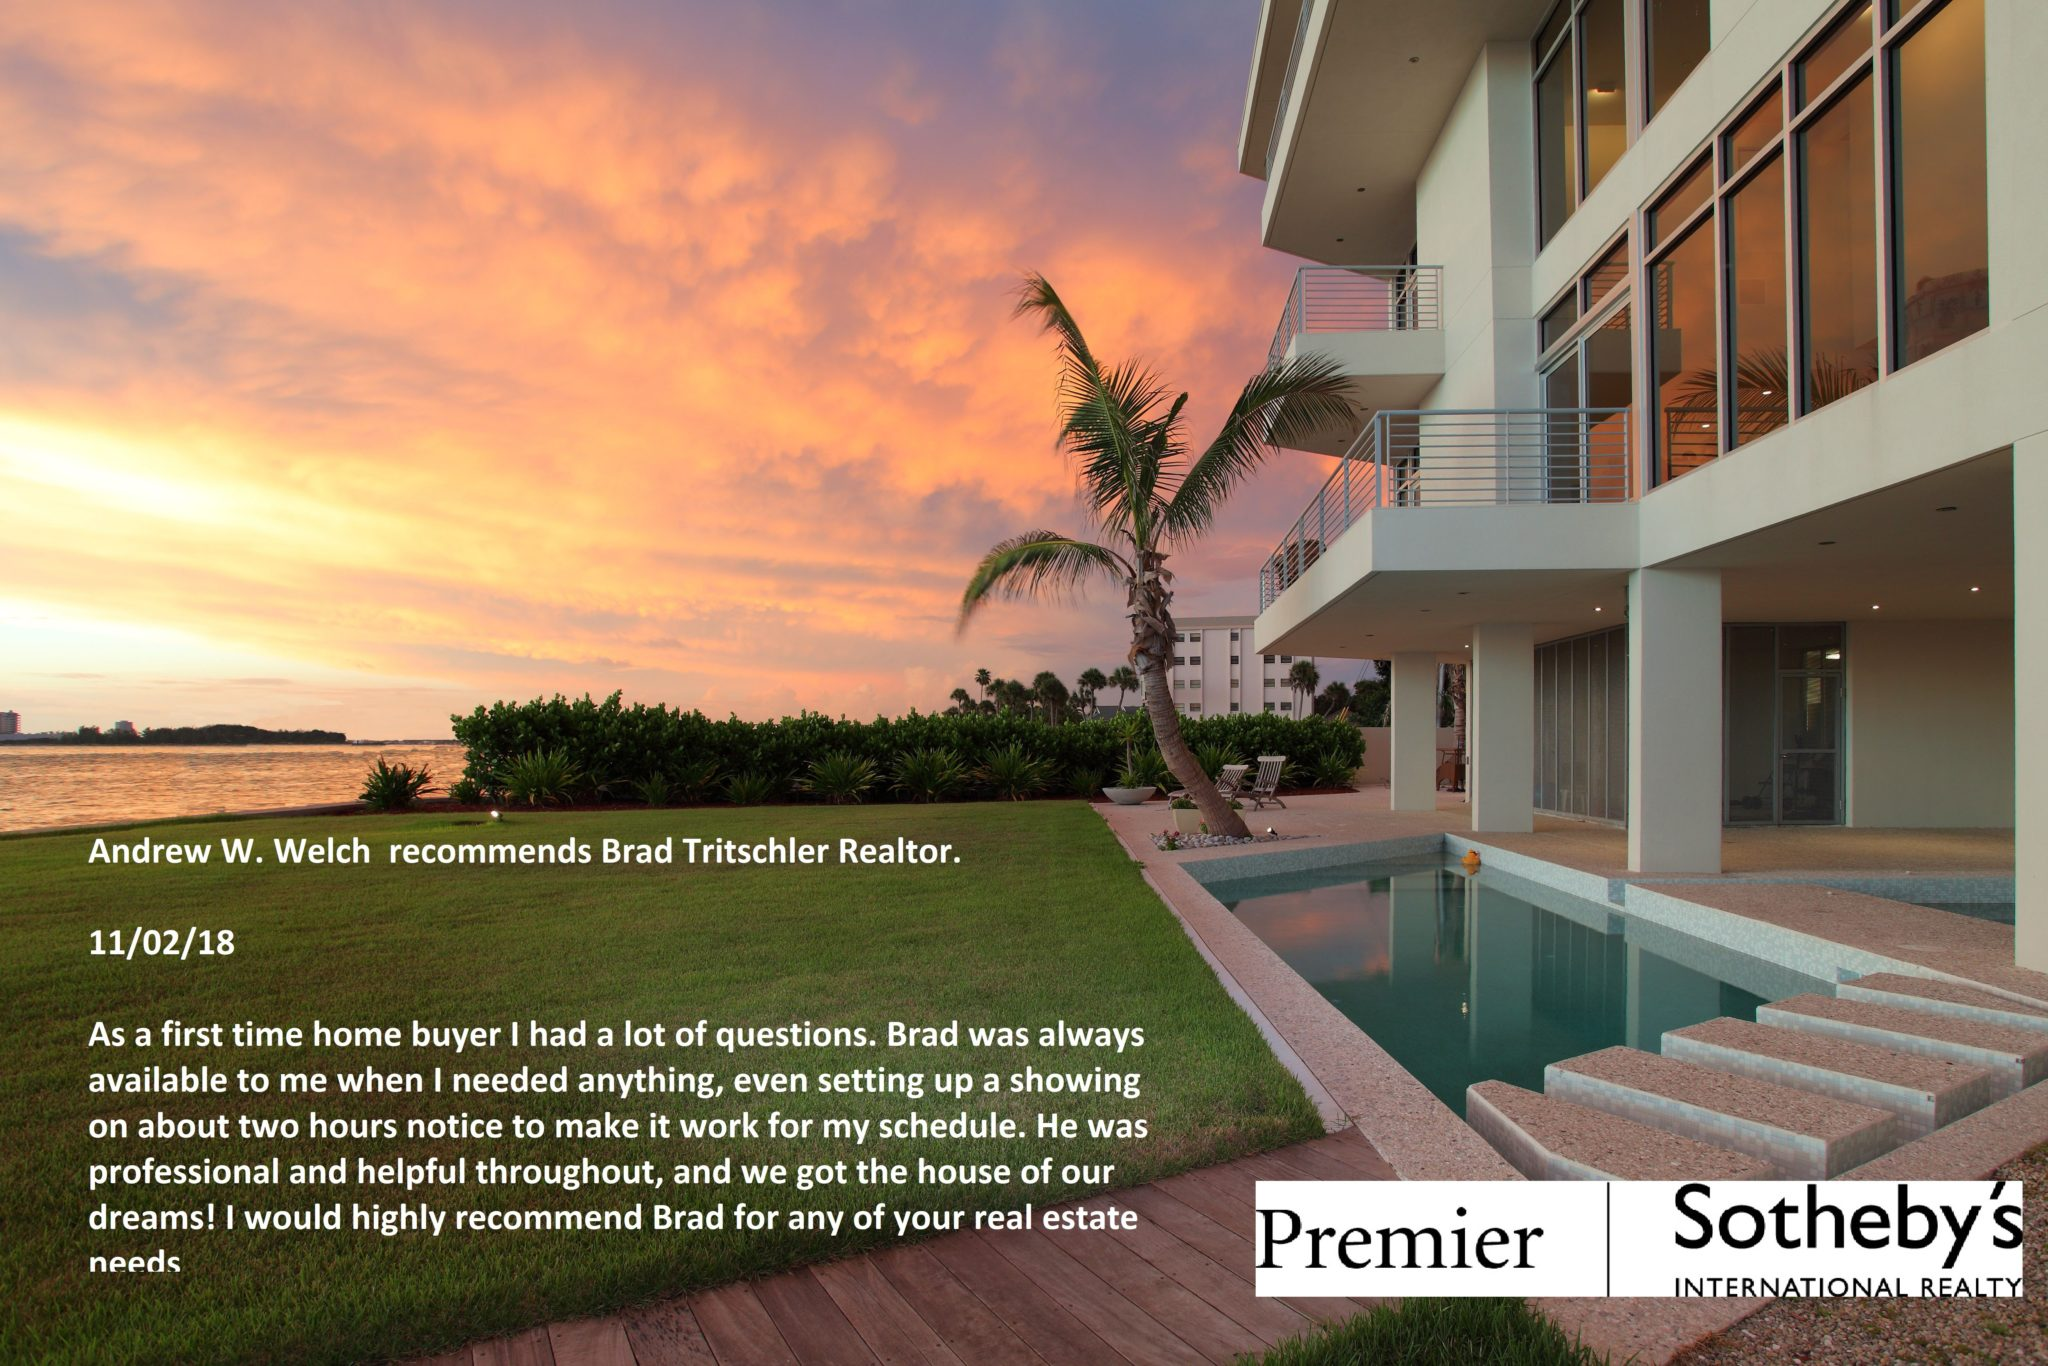 Latest Customer Review, Nokomis, FL / First time home Buyer